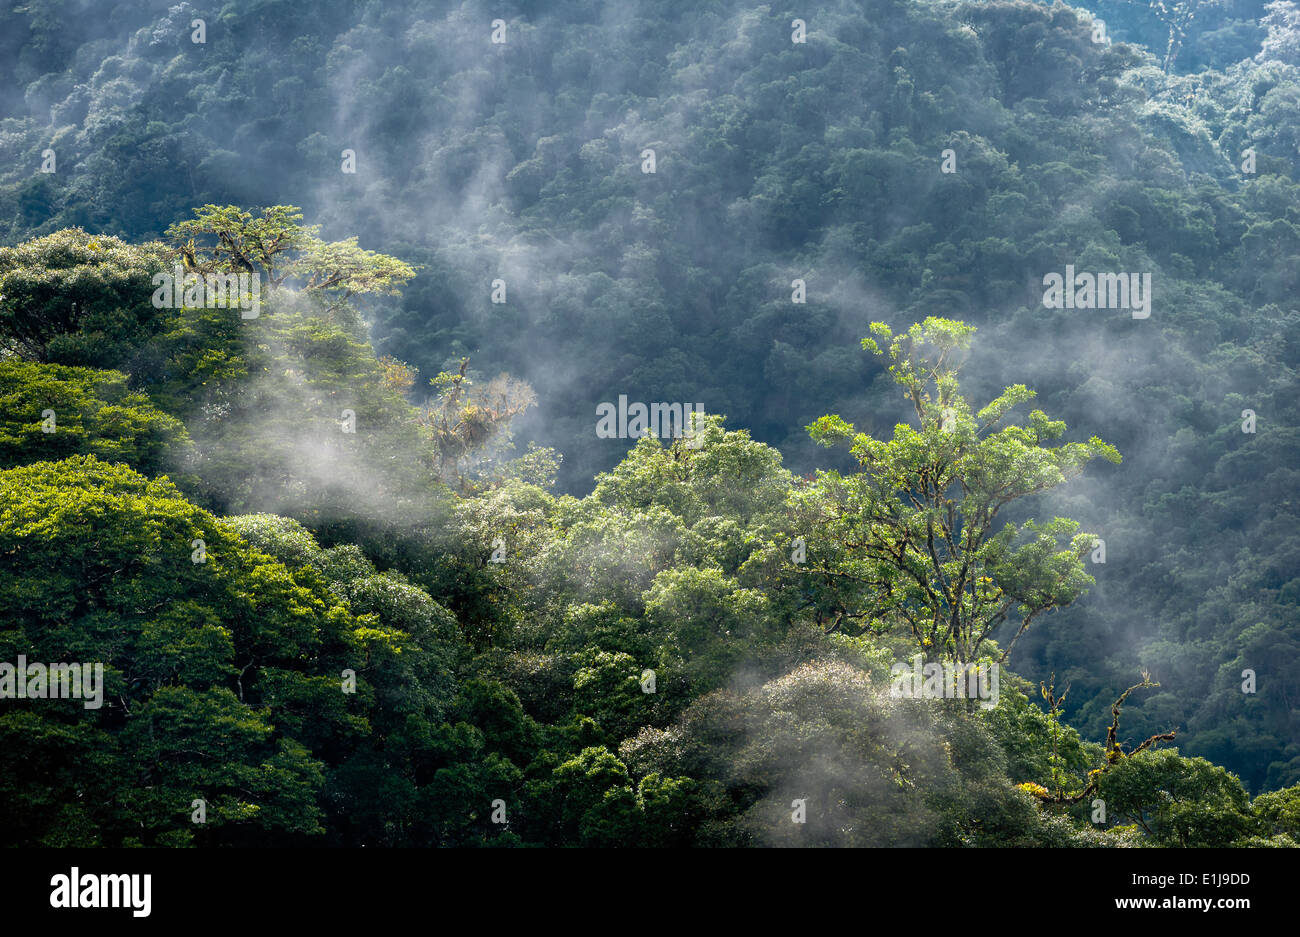 Mist rising from the Atlantic rainforest - Stock Image